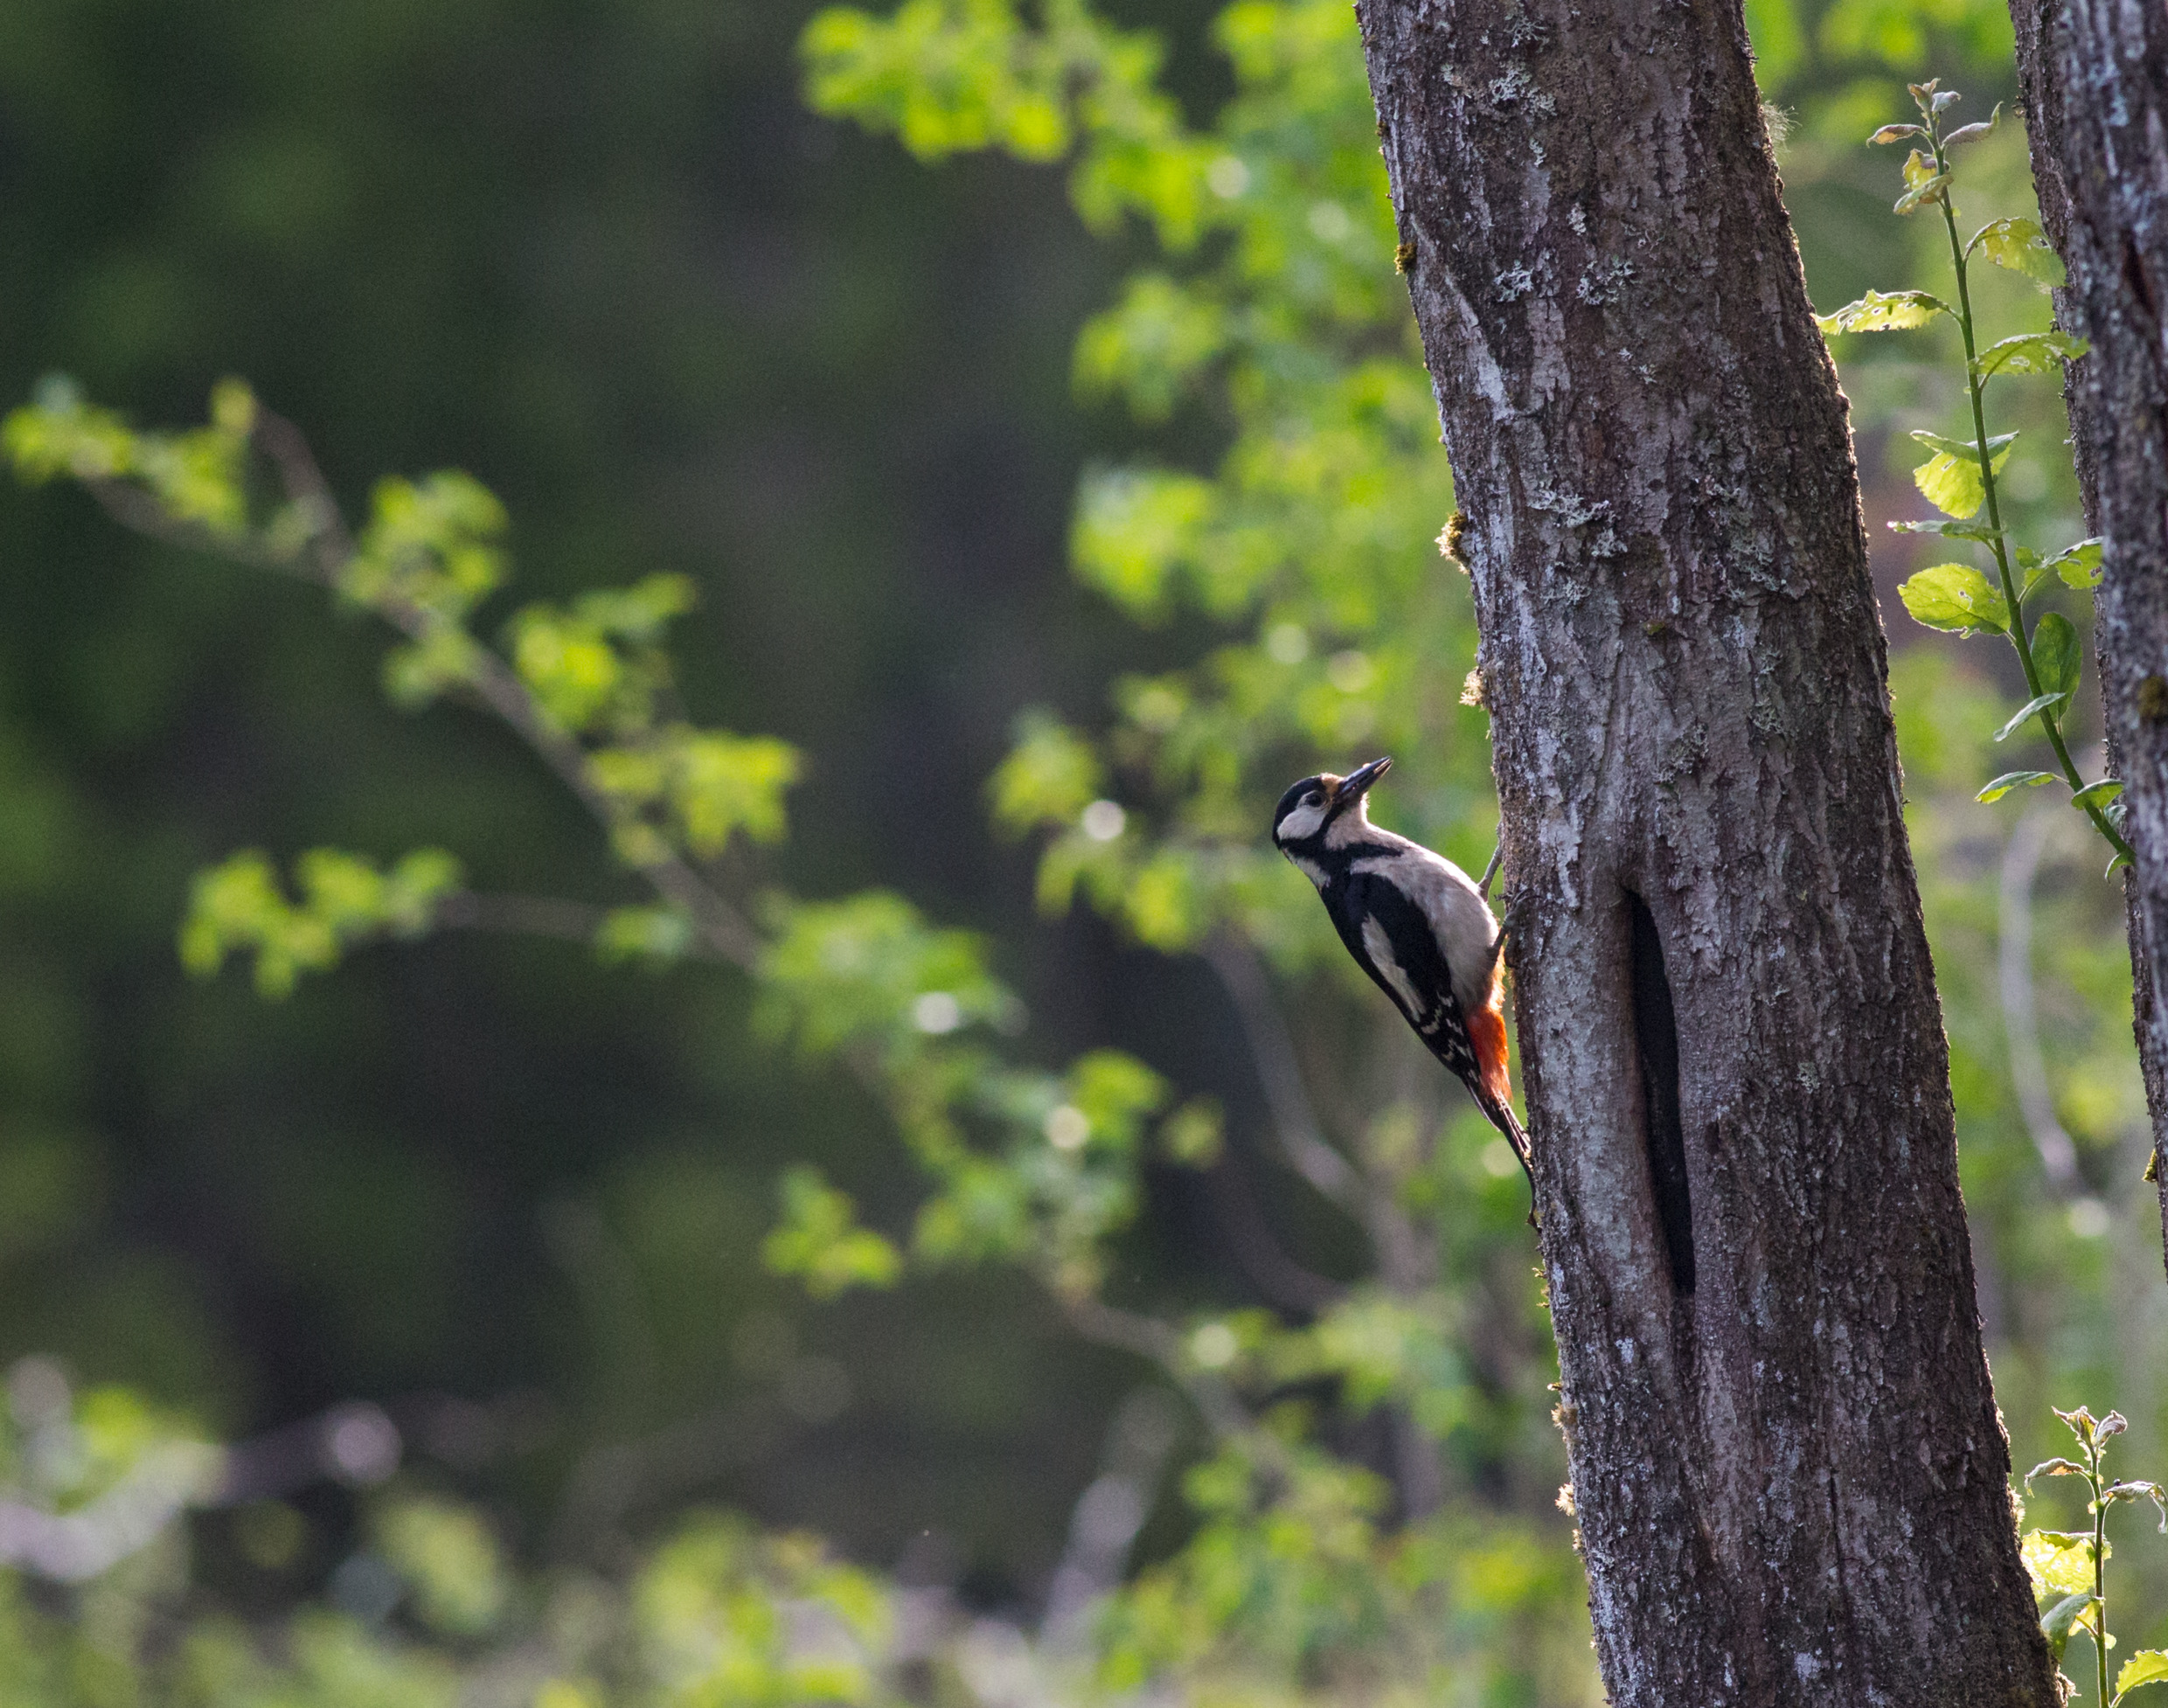 anders_tedeholm-woodpecker-5821.jpg